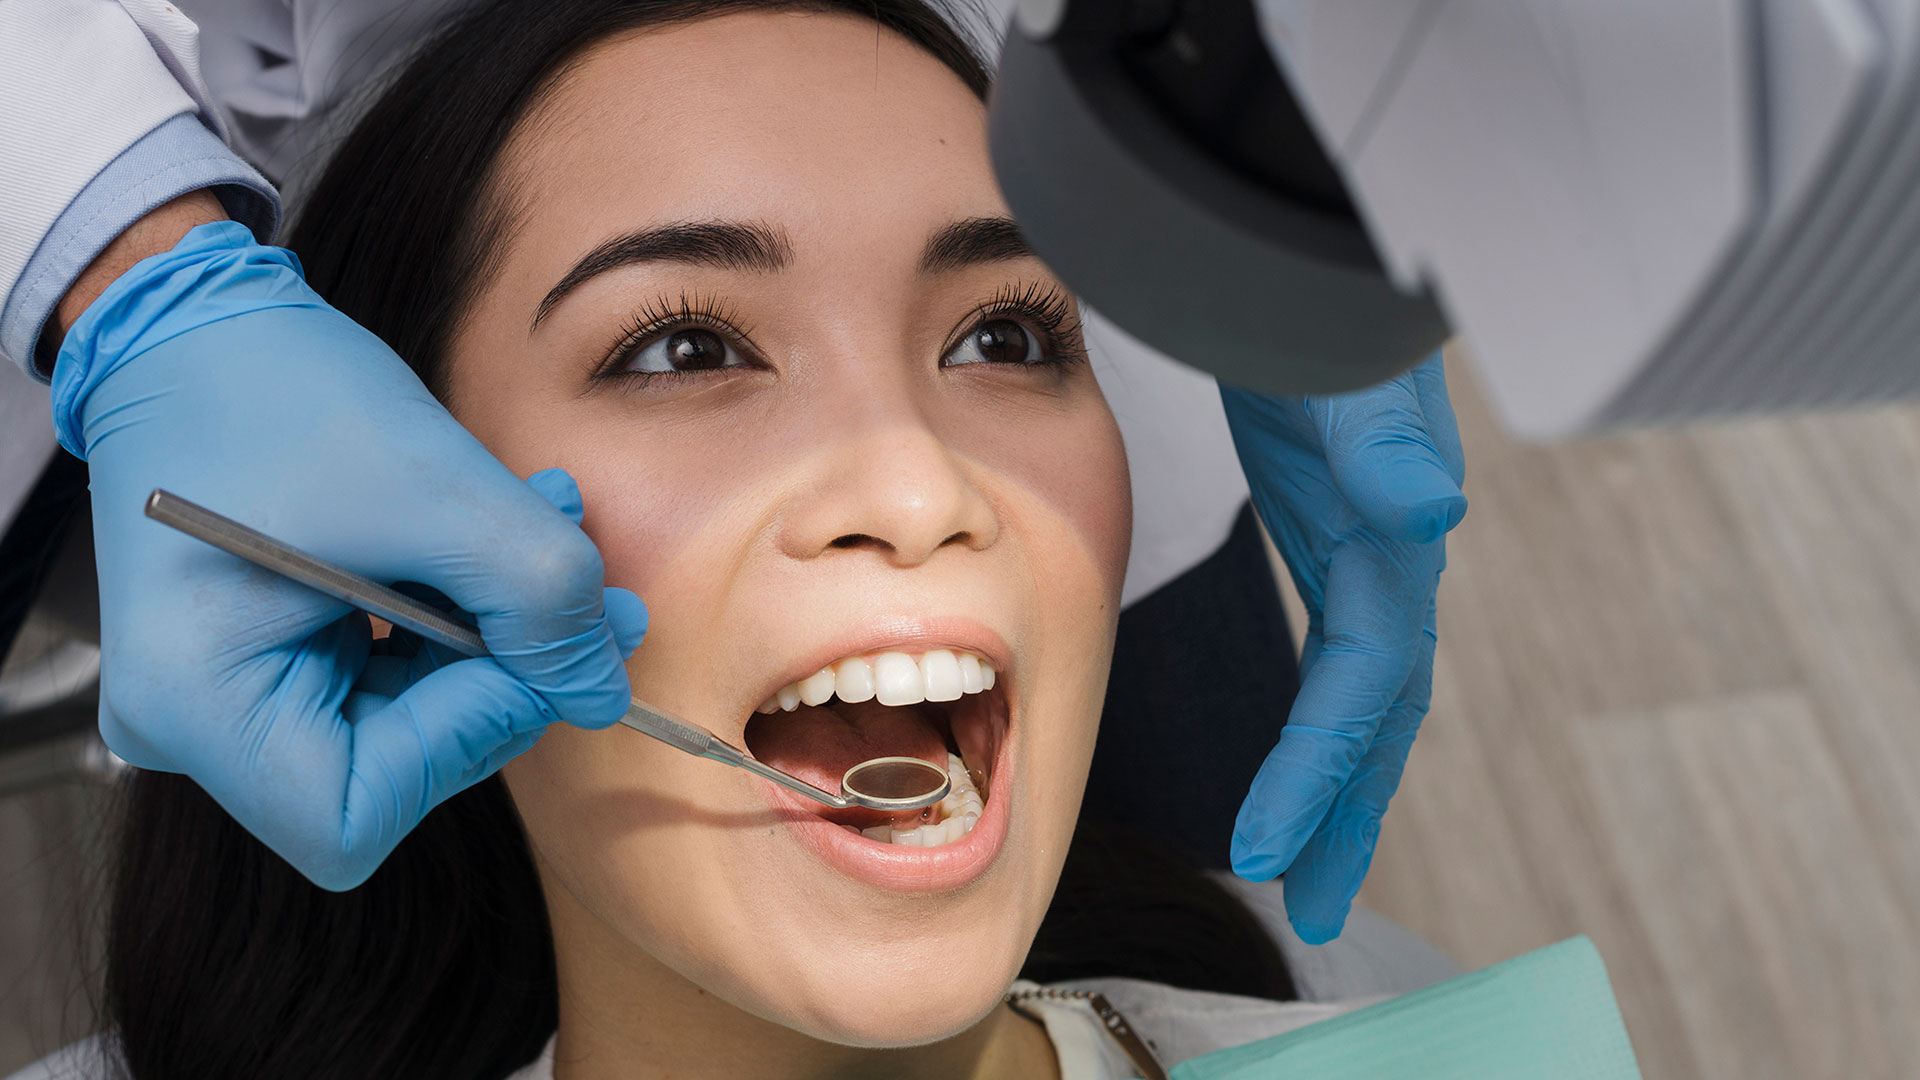 Woman at a dental appointment with the dentist looking in her mouth with a dental hand mirror